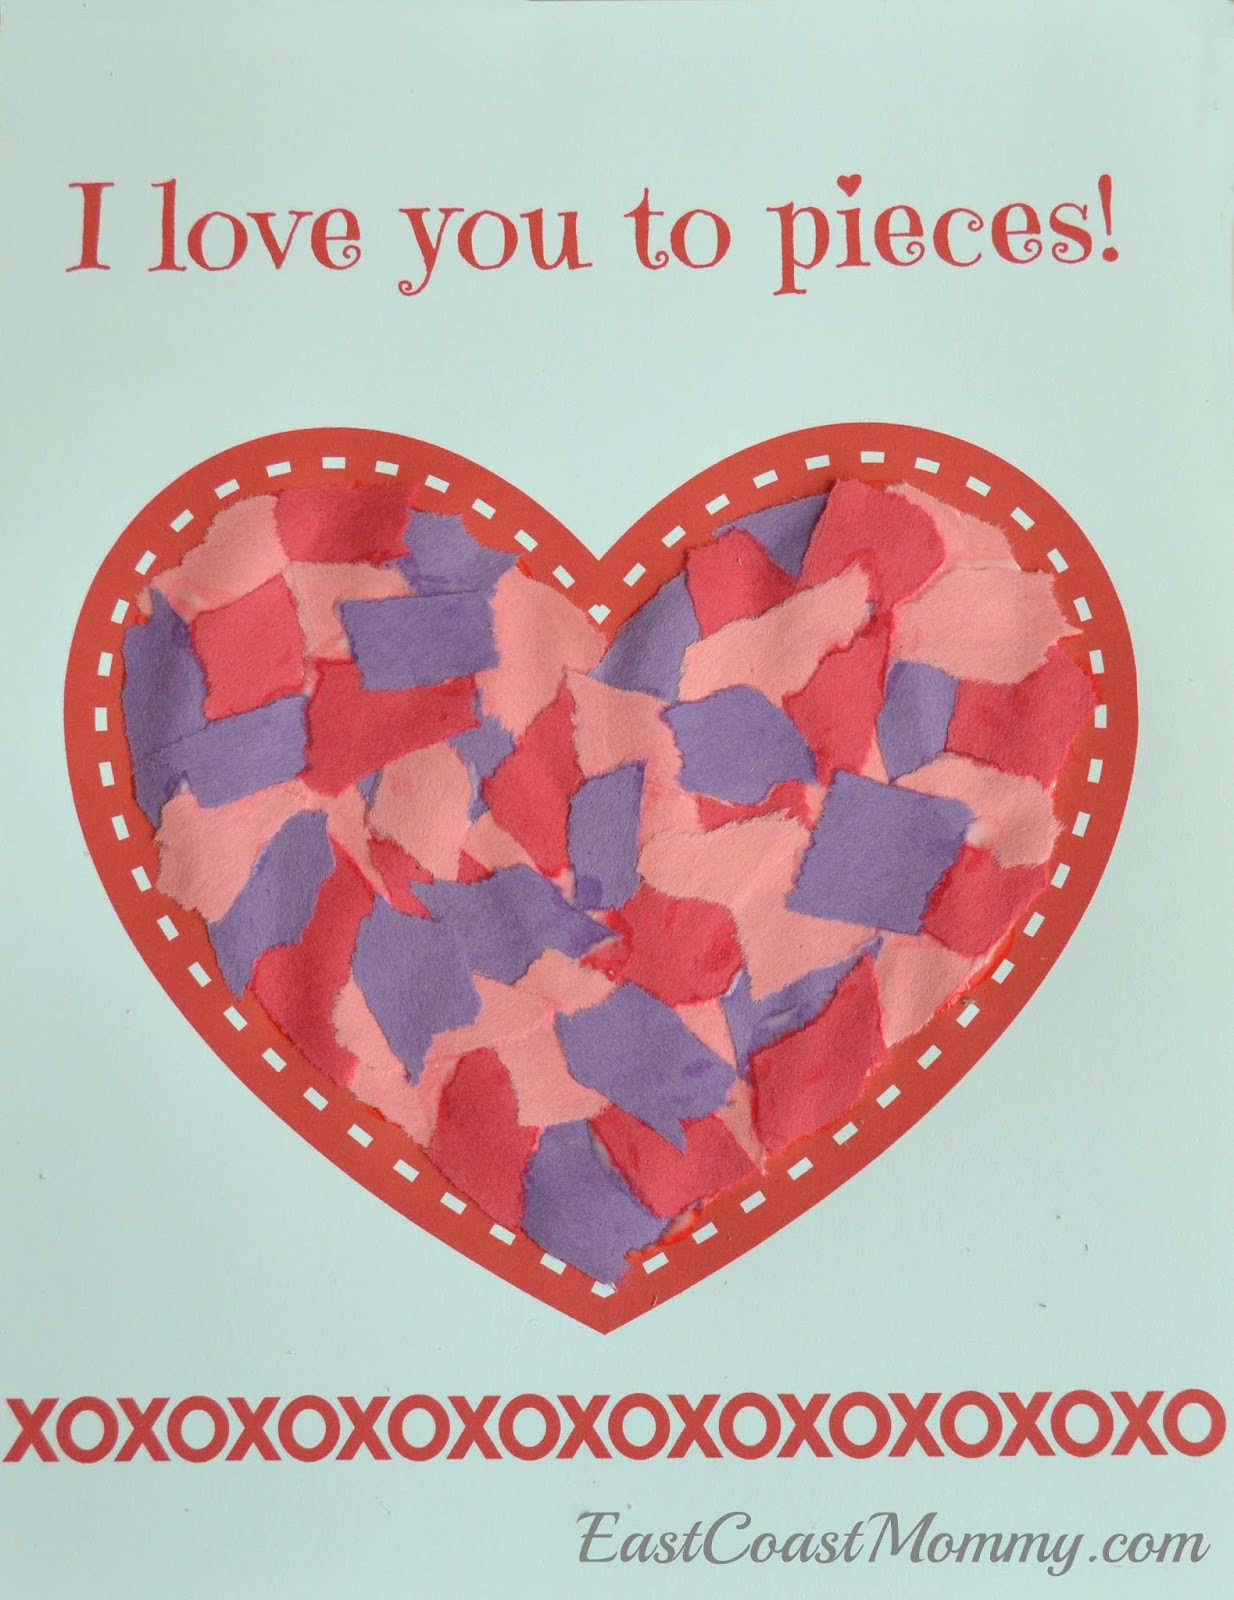 Best ideas about Valentine Day Craft Ideas For Preschoolers . Save or Pin Printable Valentines Day Crafts For Preschoolers Now.